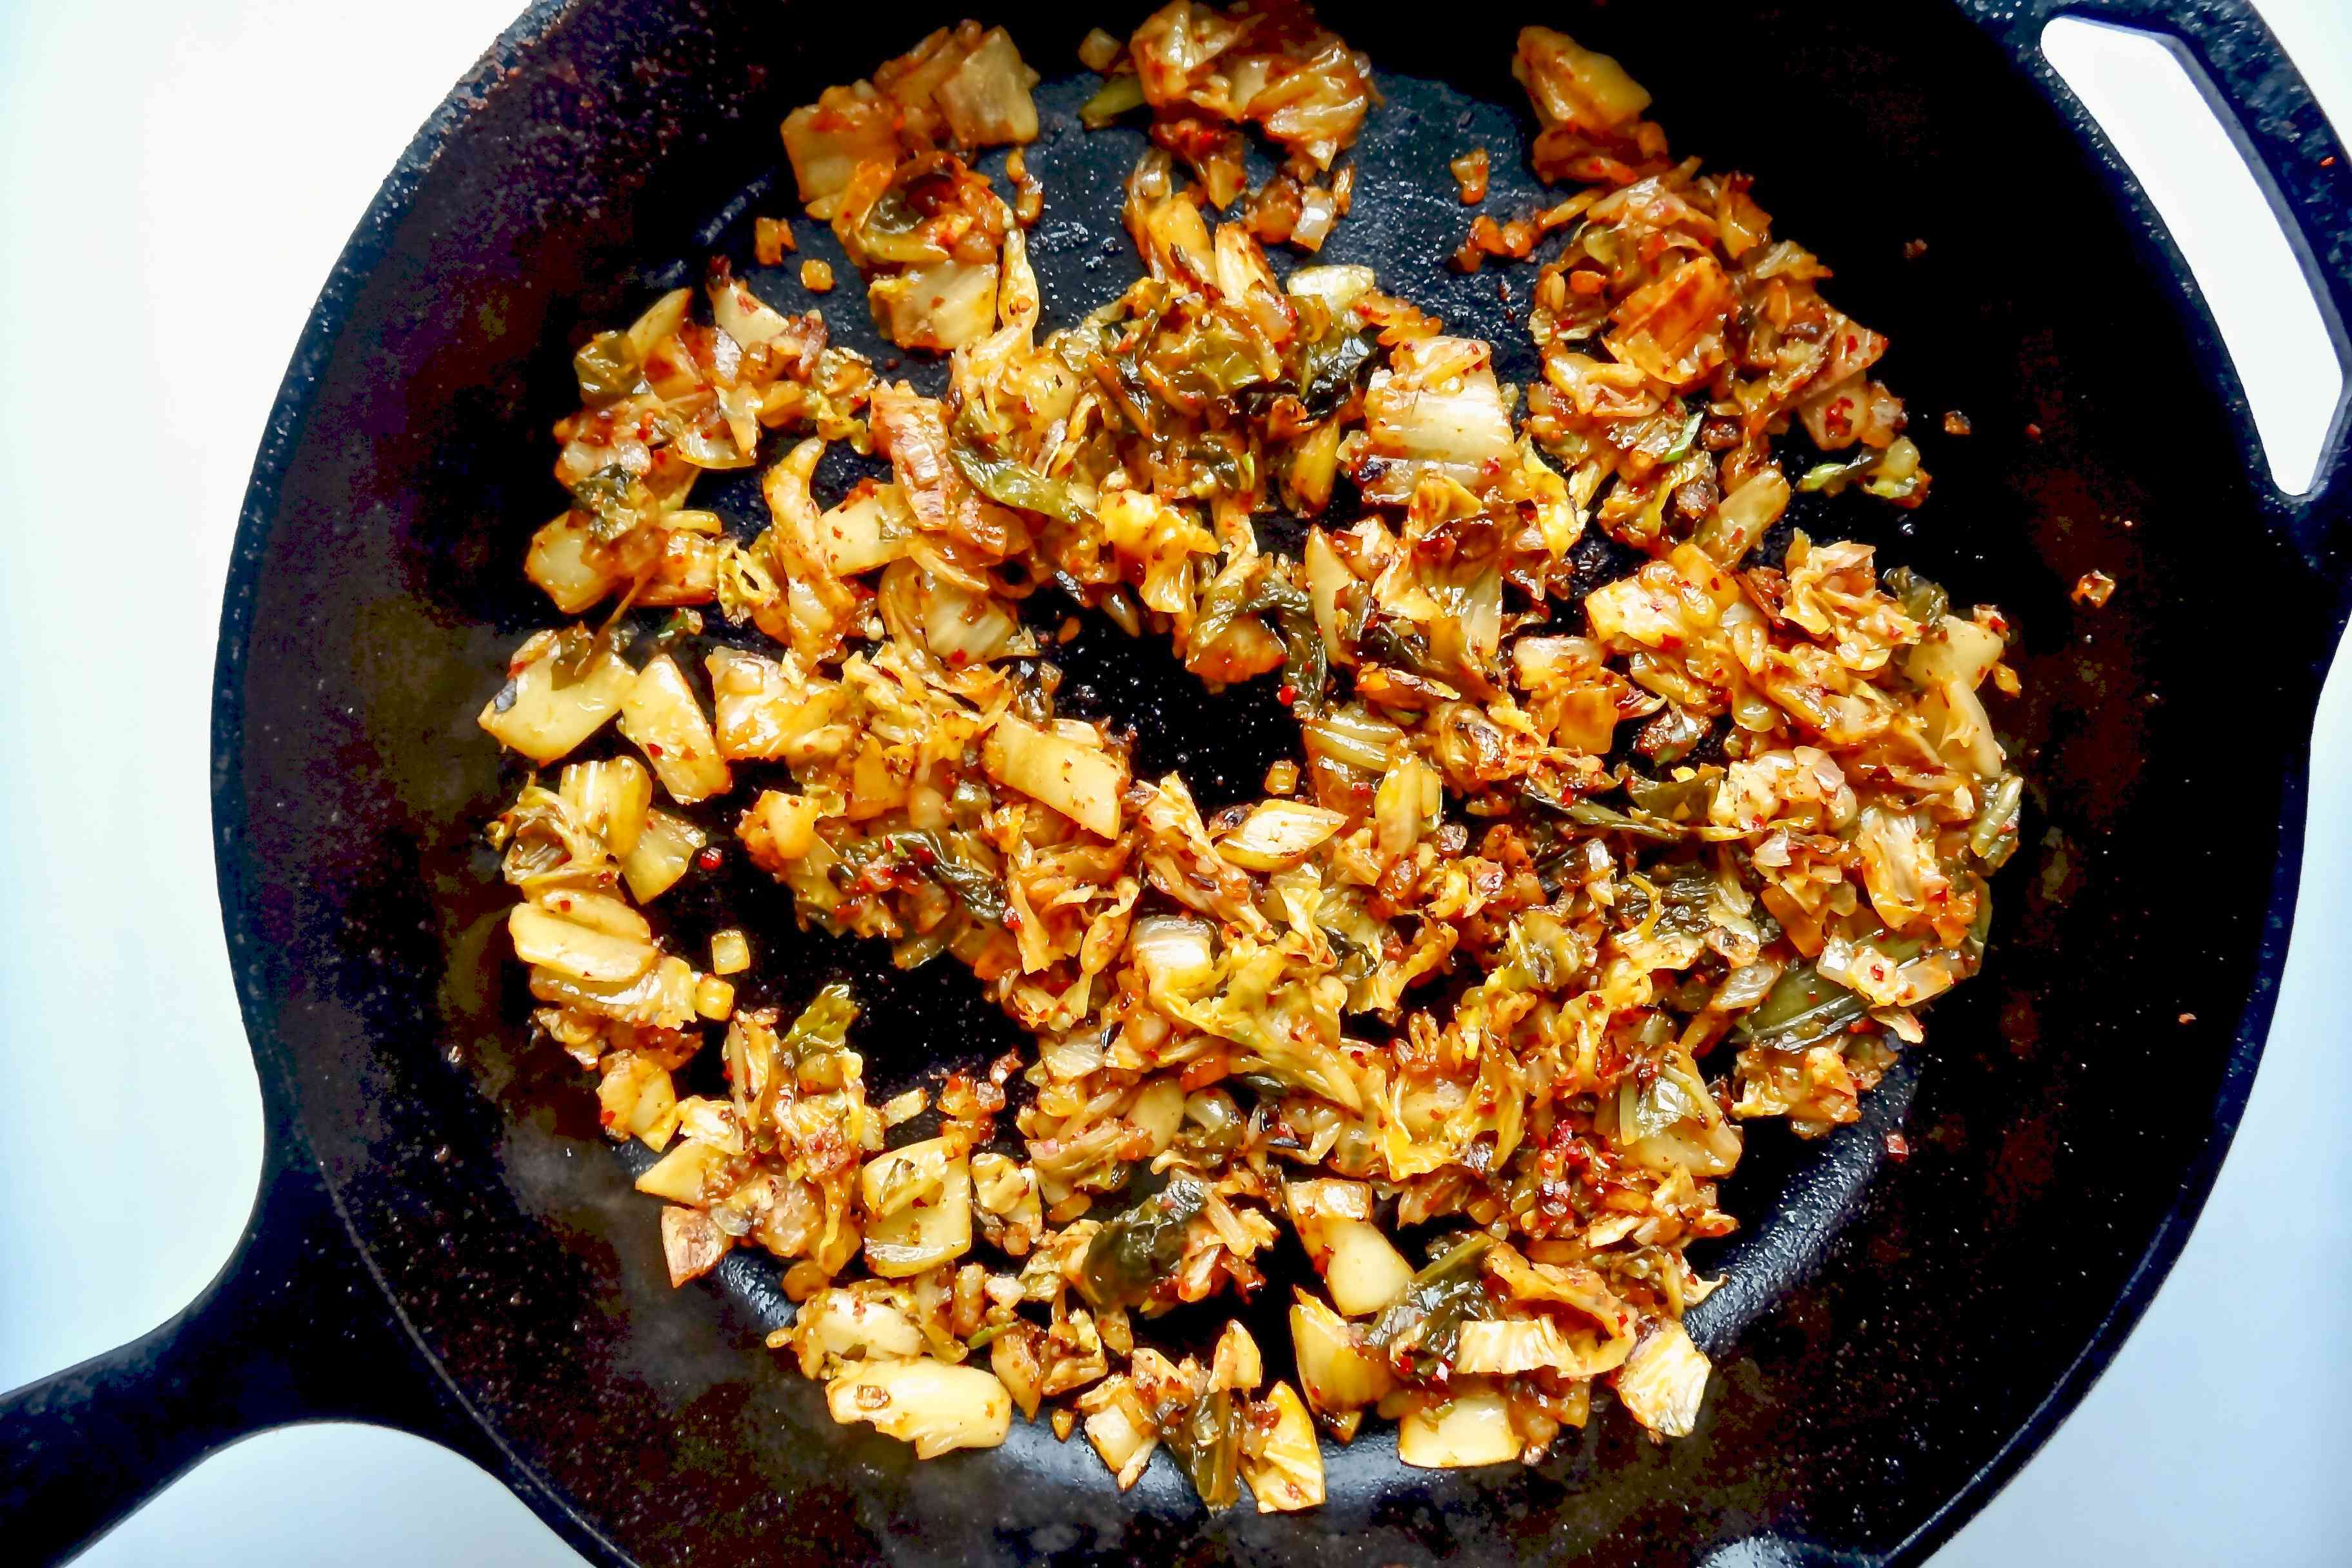 Cooking kimchi and aromatics in a skillet to make a kimchi fried rice bowl.